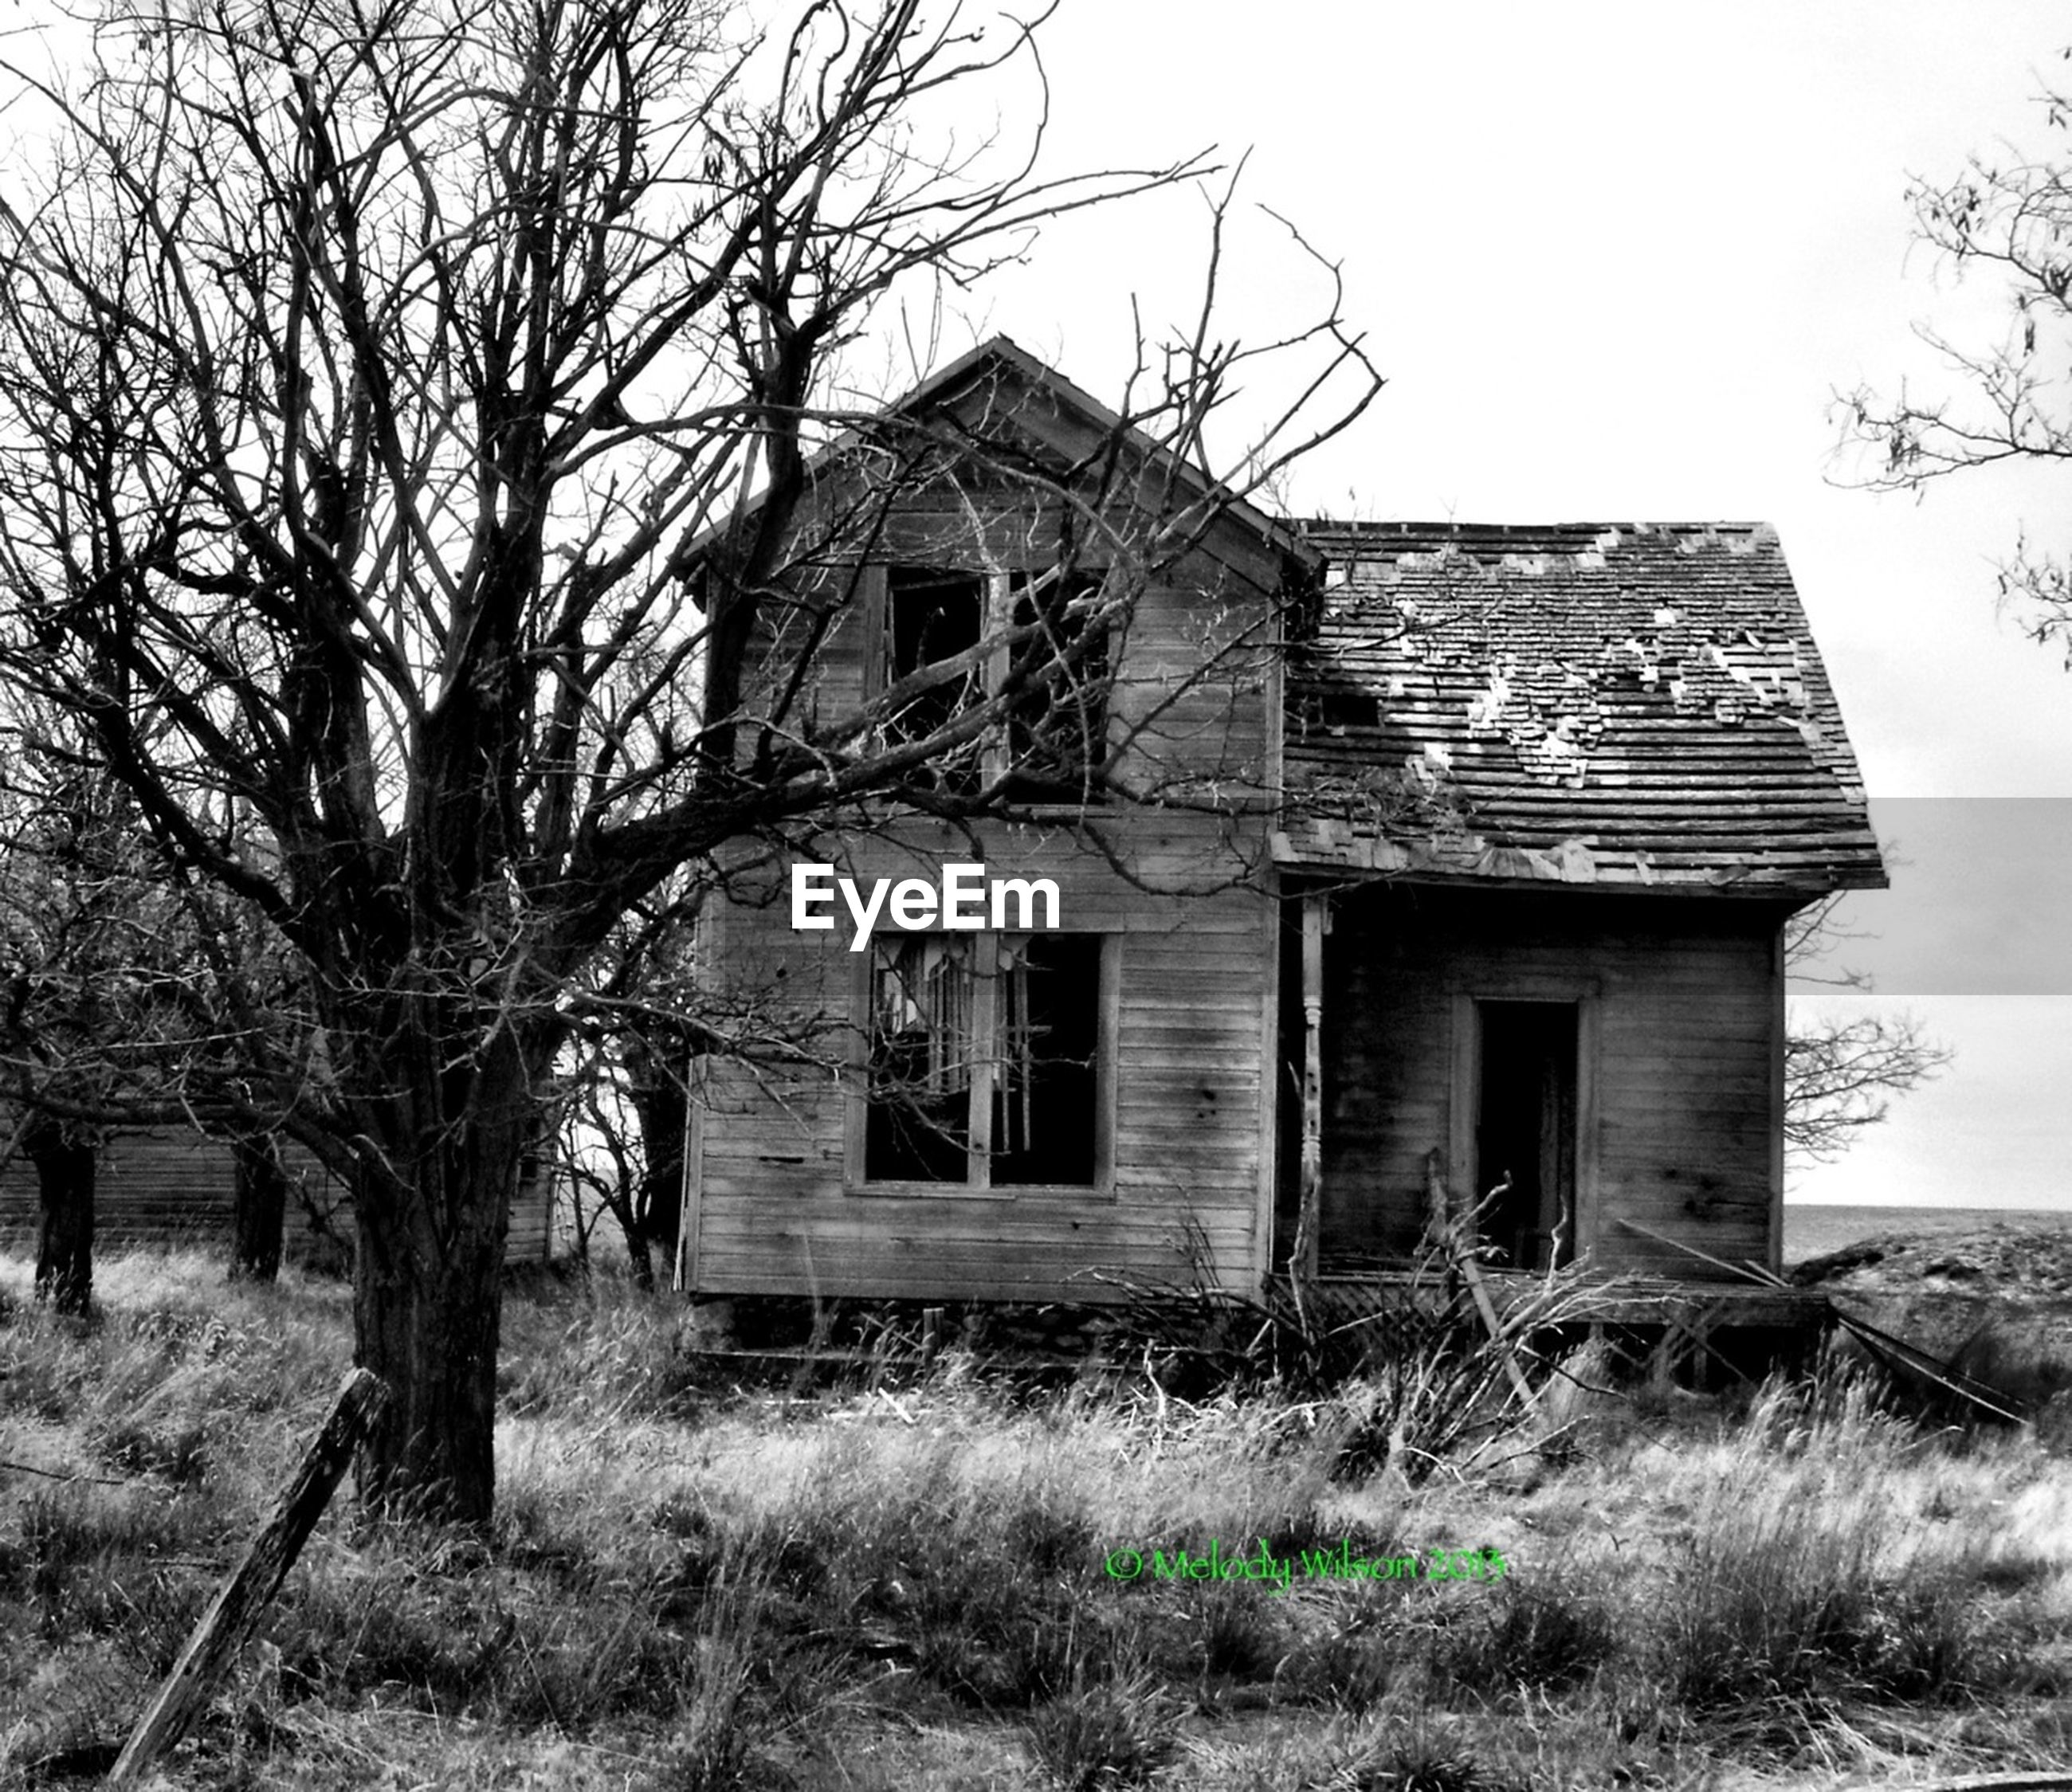 architecture, built structure, building exterior, grass, abandoned, old, house, tree, bare tree, field, damaged, sky, obsolete, run-down, barn, deterioration, history, old ruin, rural scene, clear sky